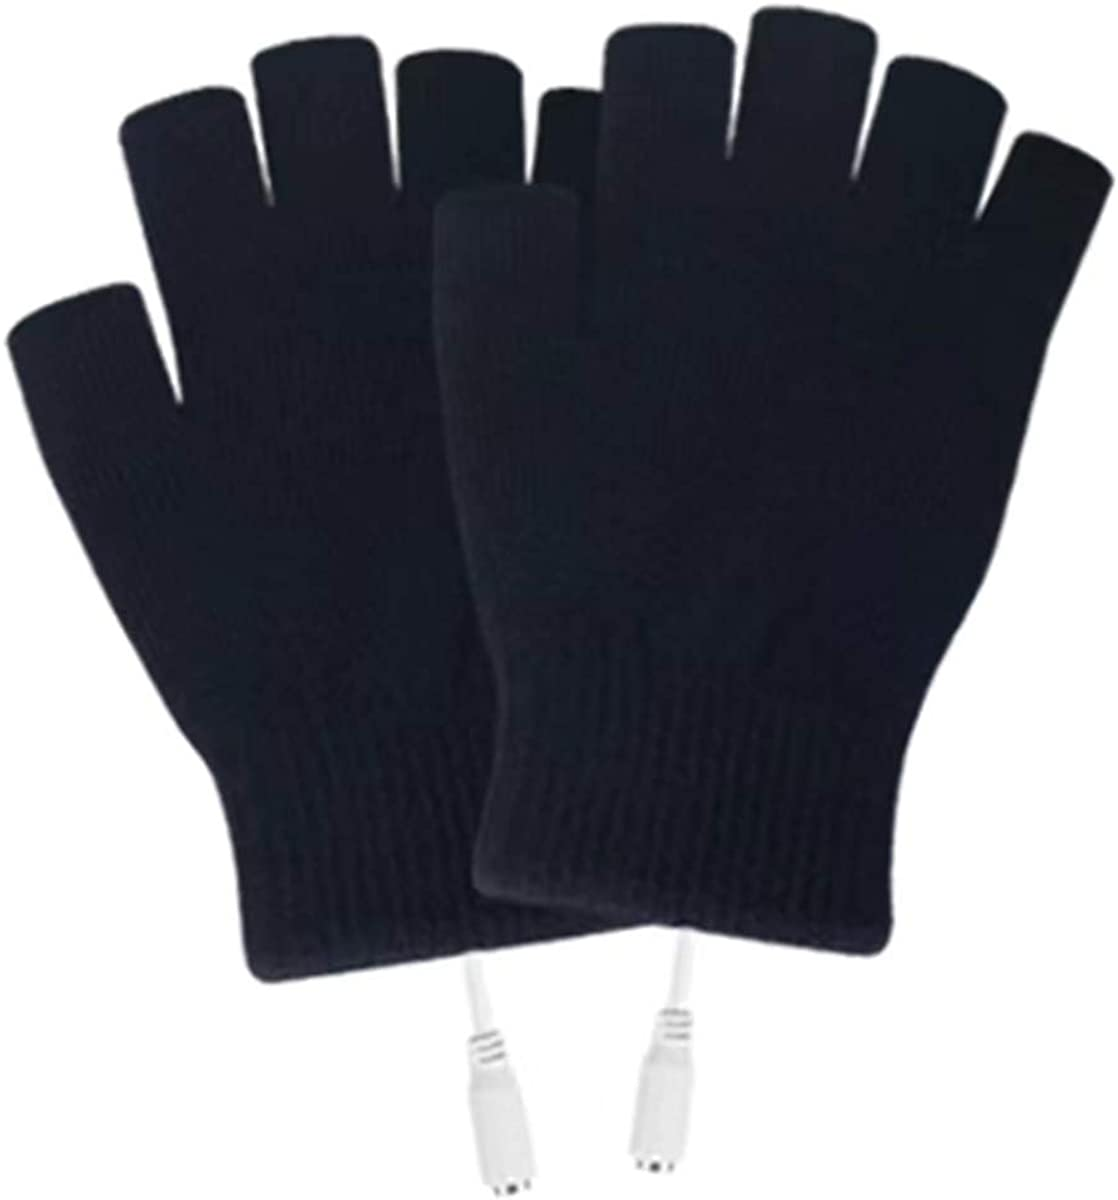 USB Heated Mittens, Fingerless USB Heating Warm Hot Hands Electric Heated Gloves, Knitted Laptop Gloves with Finger Cover for Typing Hiking Cycling